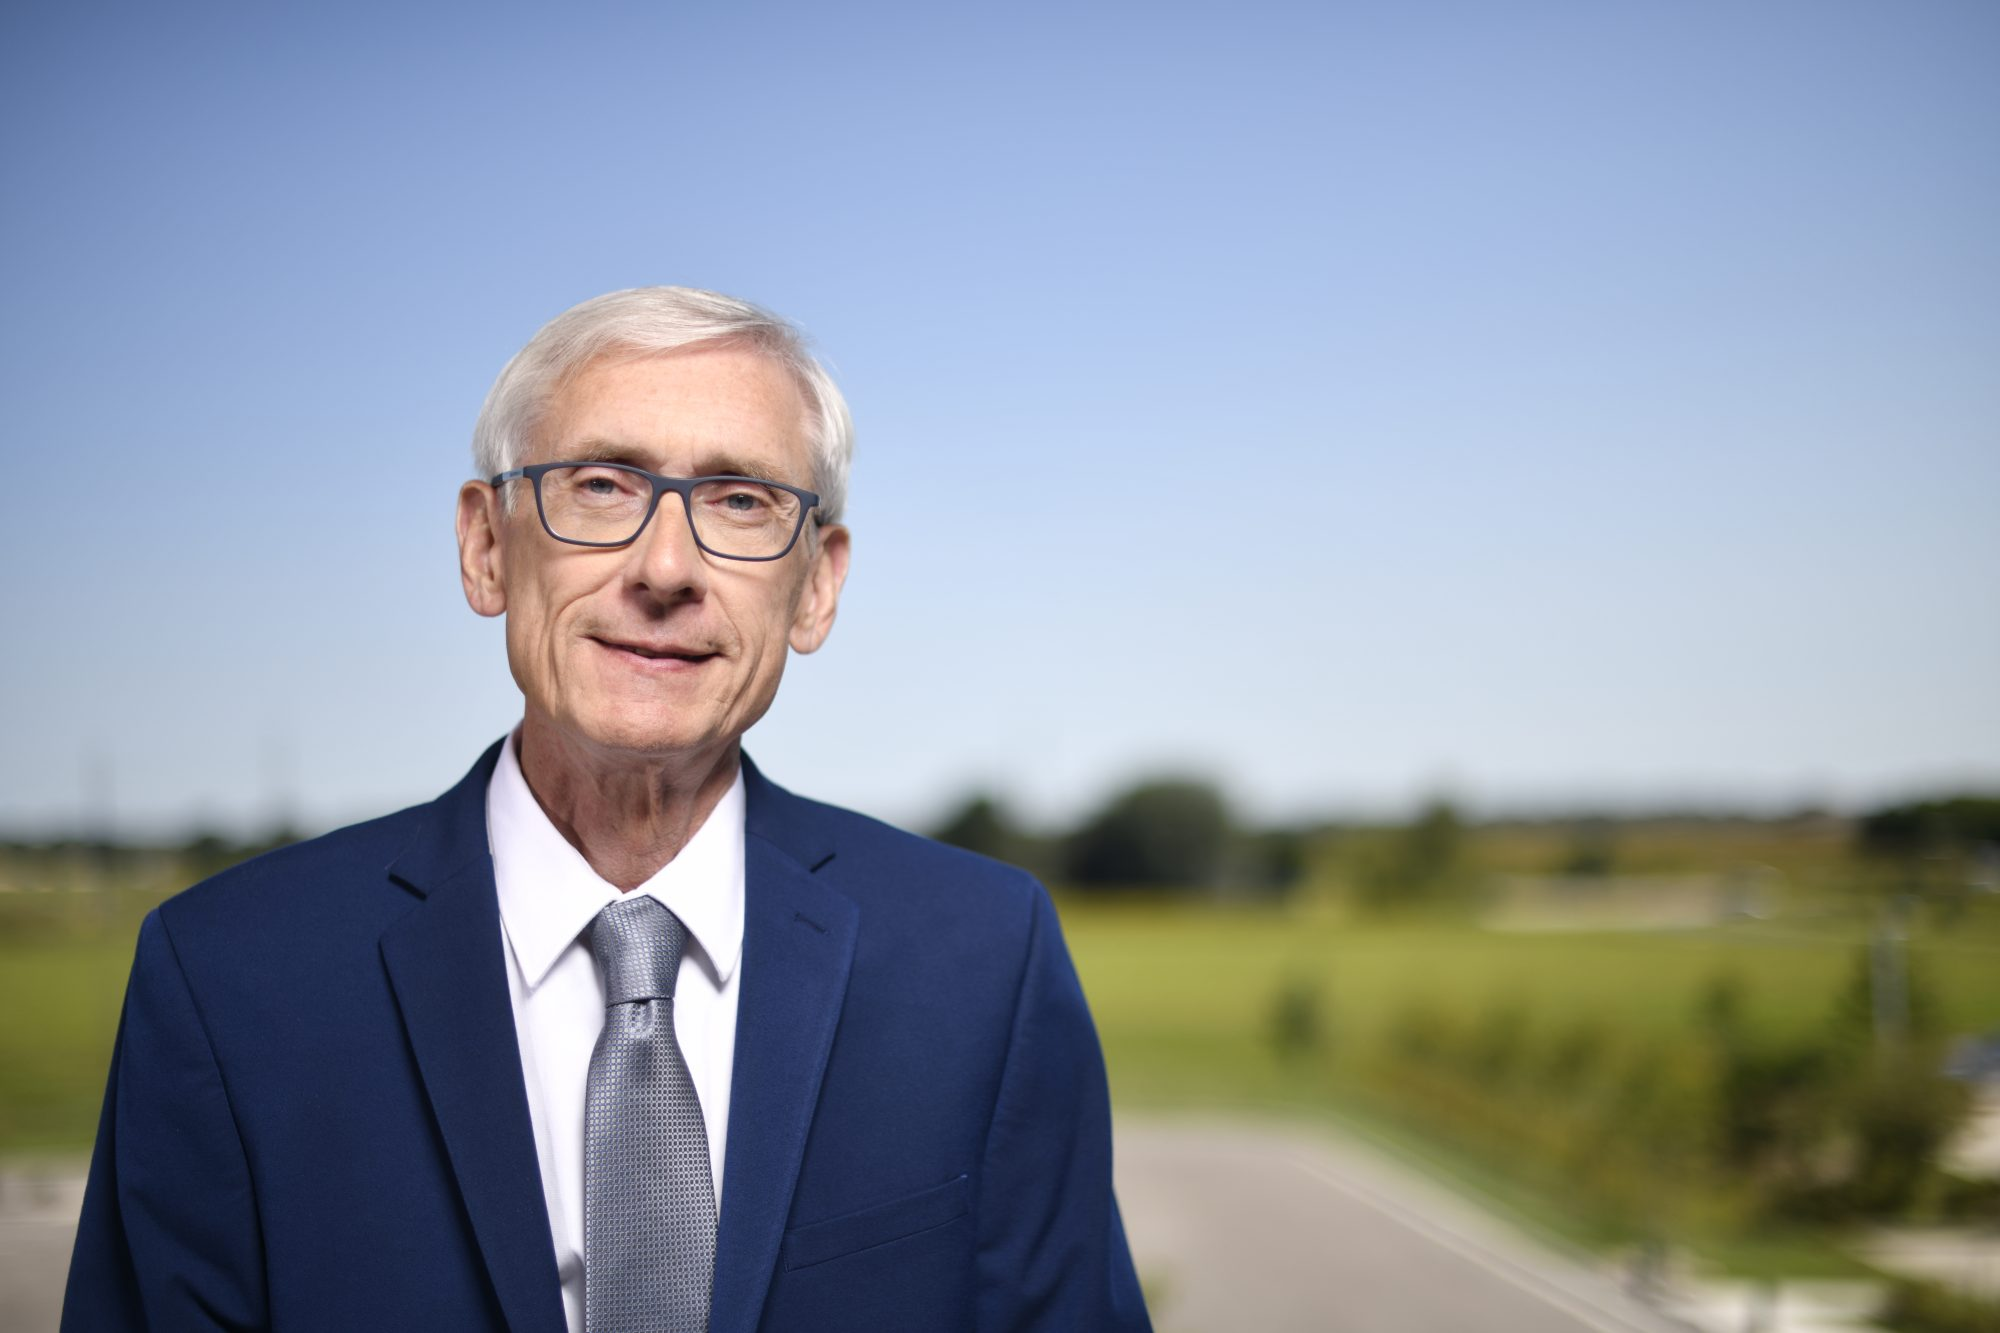 Gov. Evers Requests Creation of Committee on Entrepreneurship and Innovation at WEDC